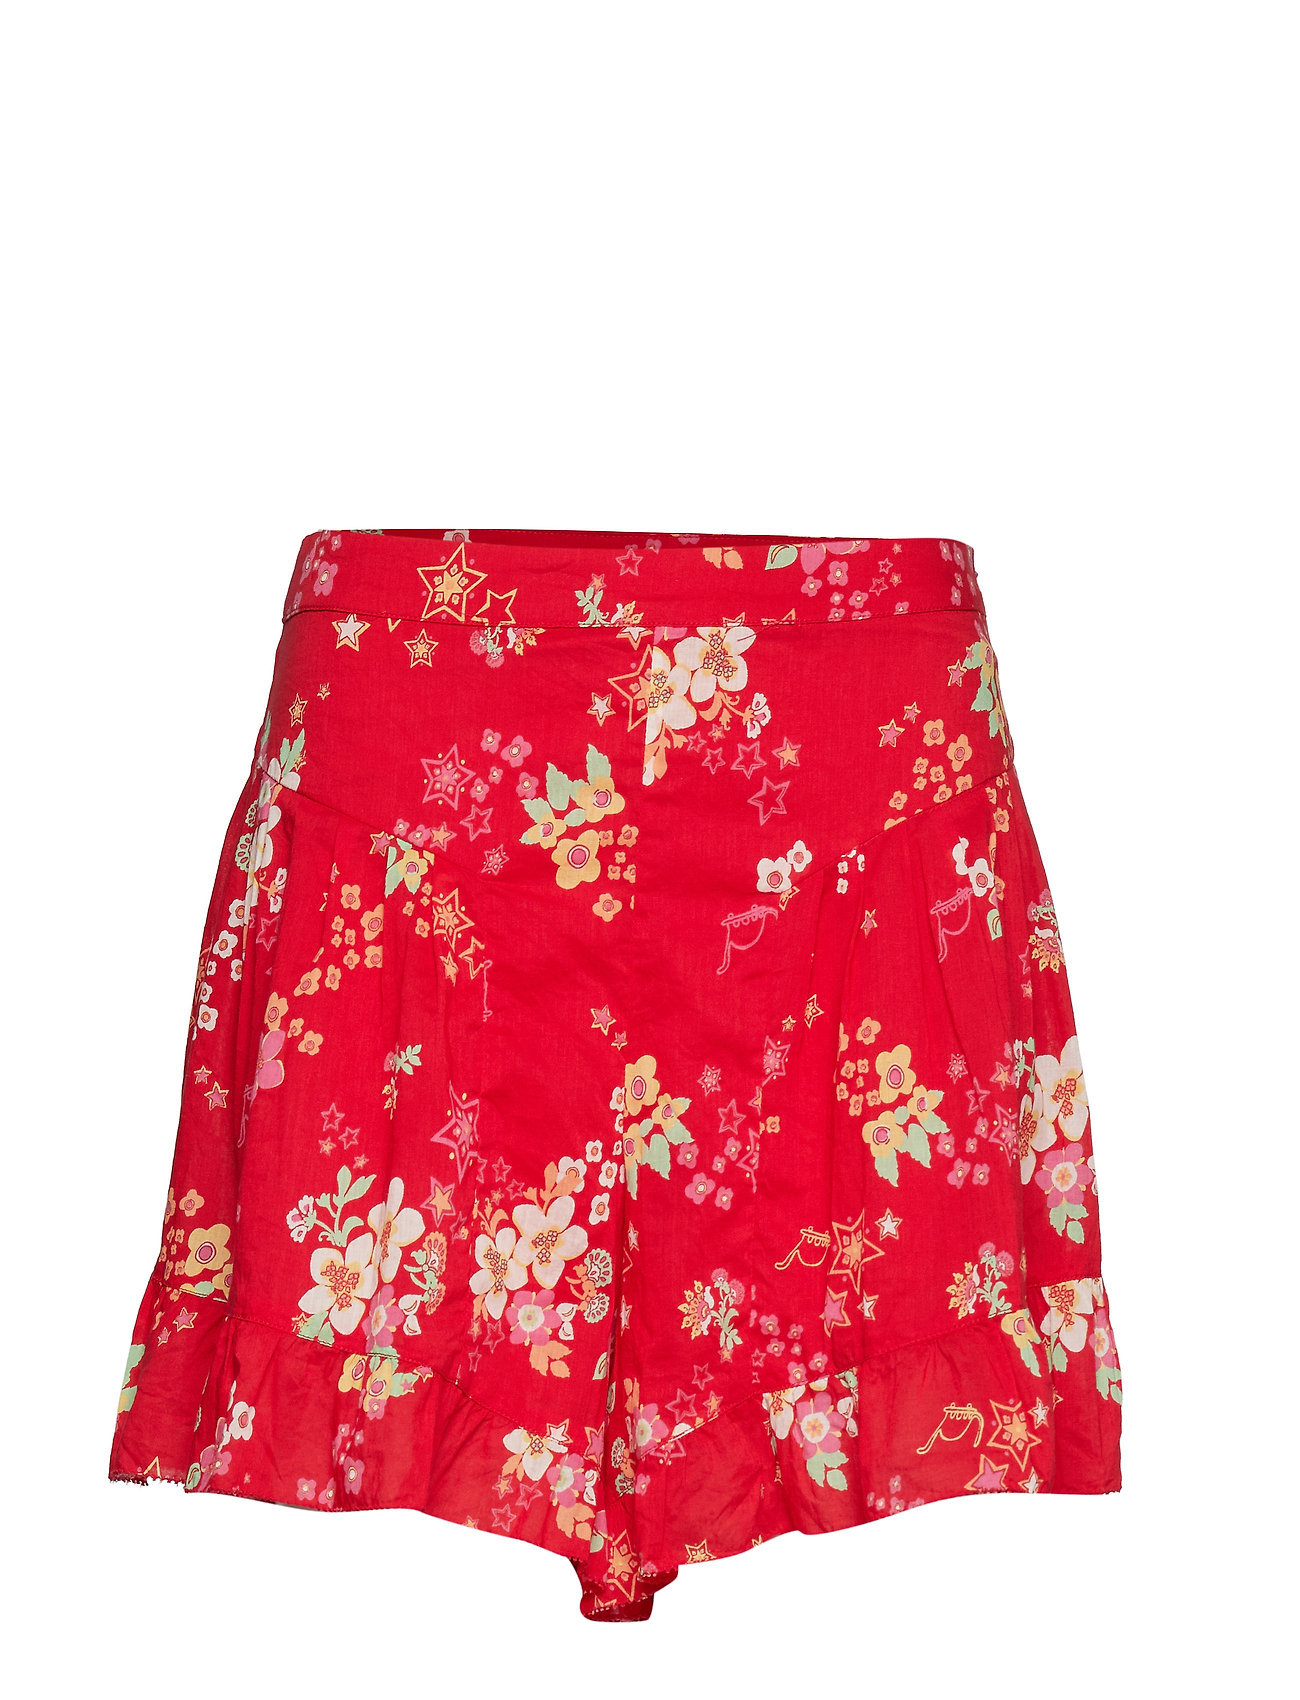 ODD MOLLY marvelously free shorts - RED TULIP